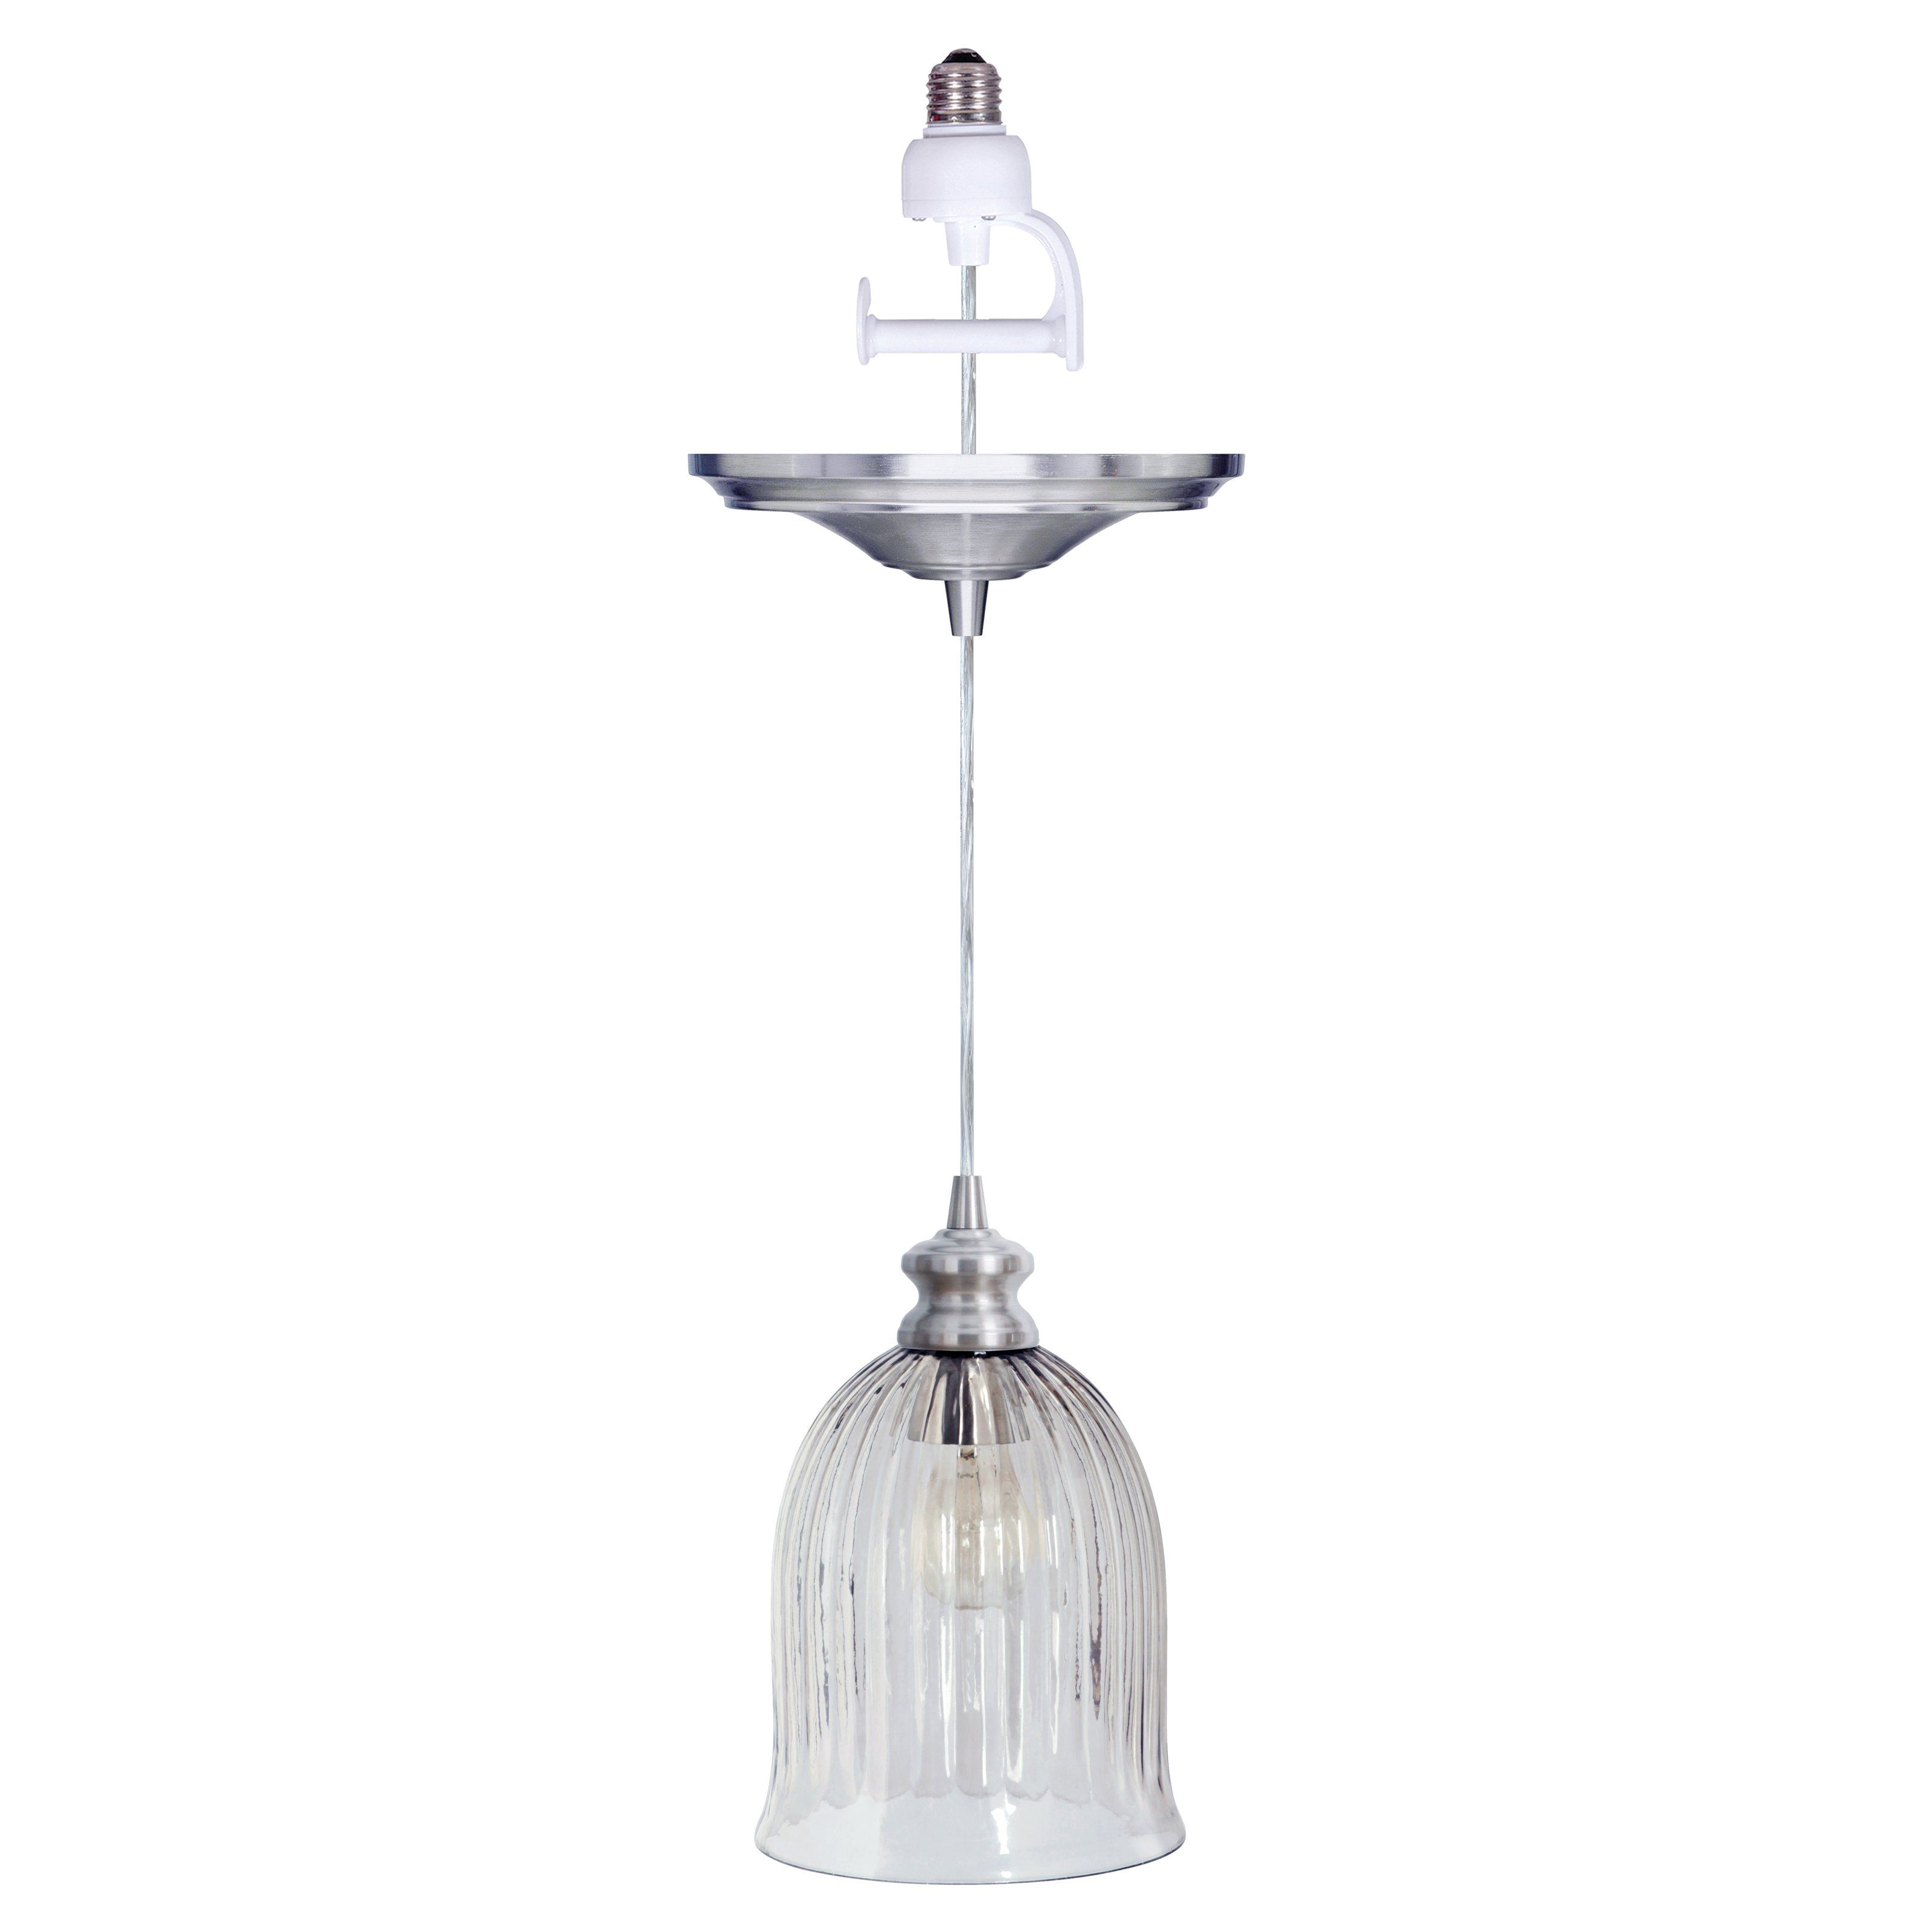 Have To Have It Worth Home Products Instant Pendant Light With Clear Ribbed Glass Bell Shade Brush Screw In Pendant Light Glass Pendant Shades Pendant Light